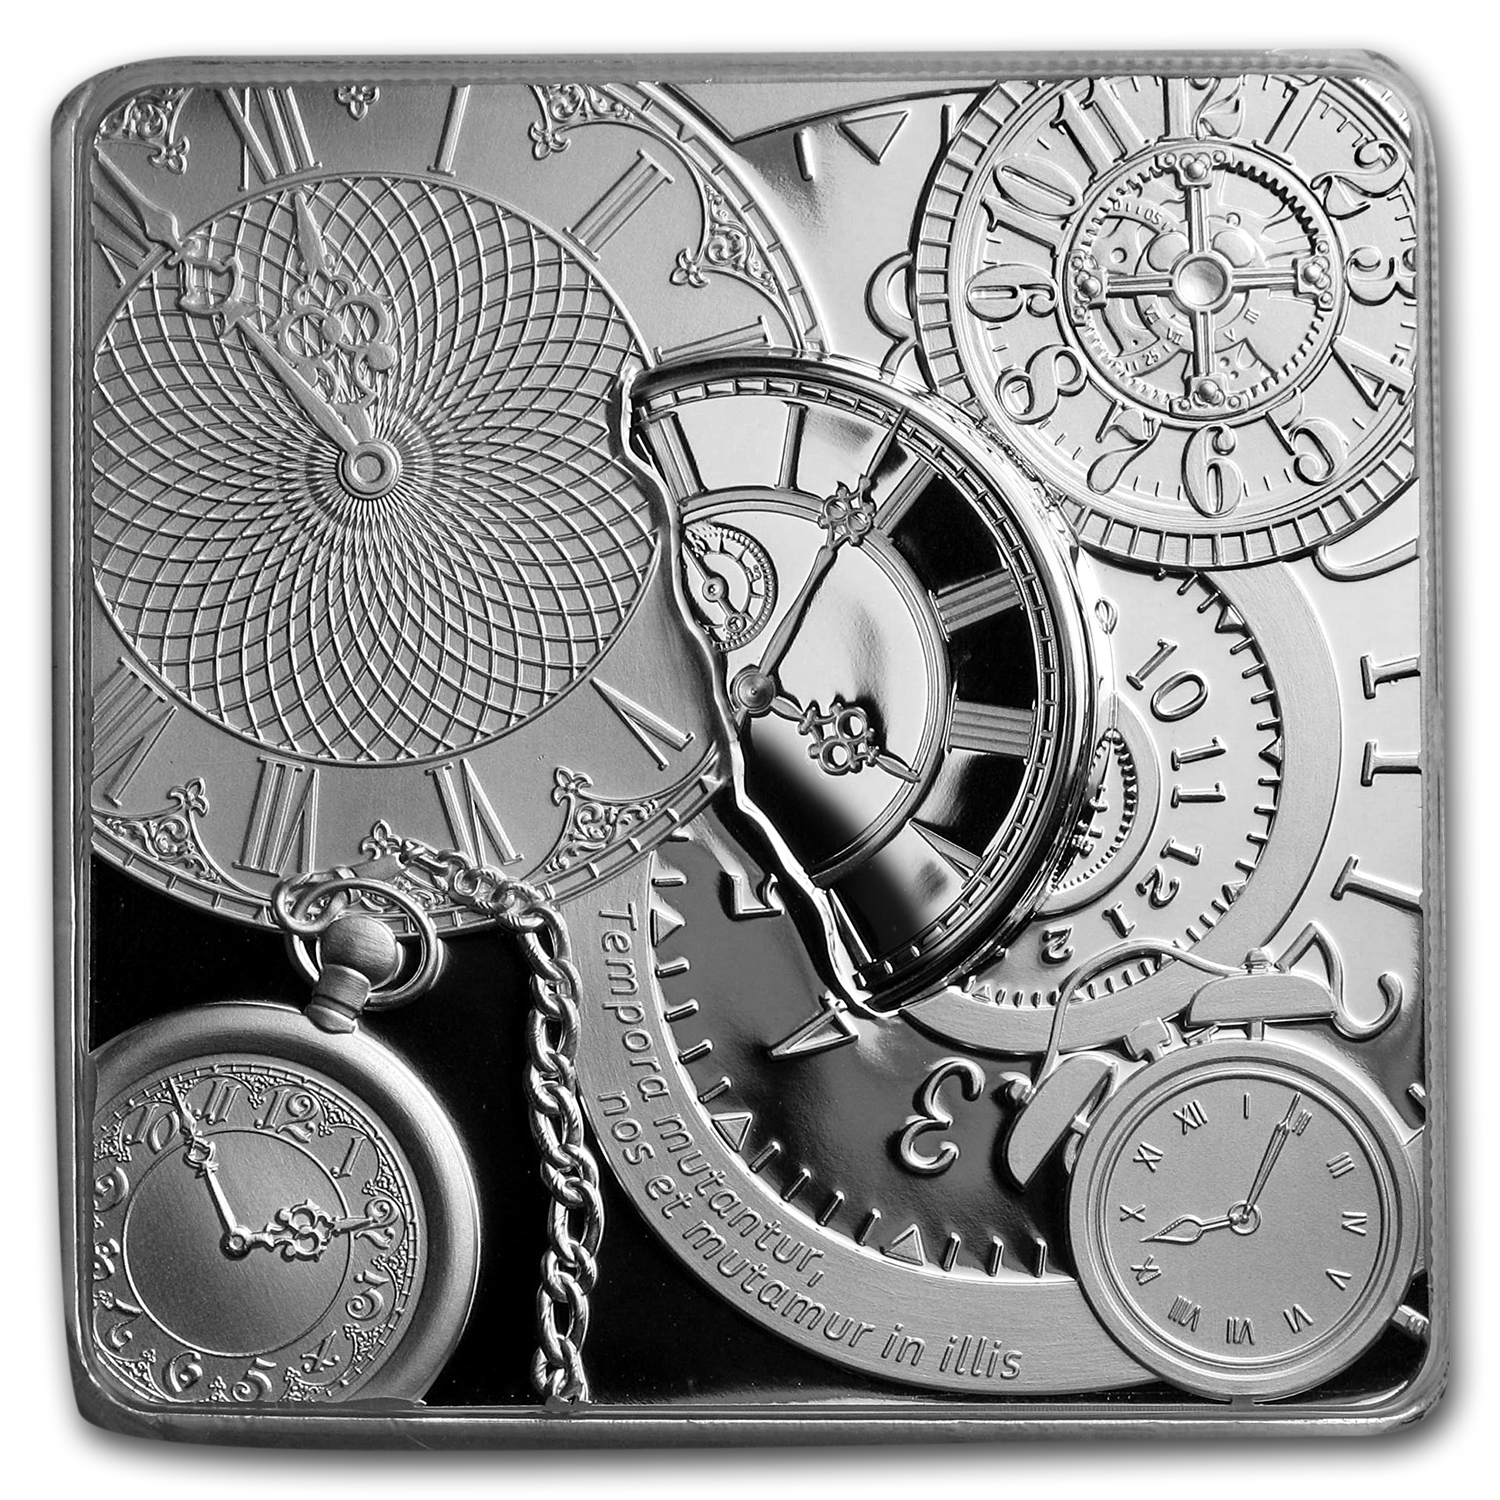 2017 Cook Islands 1 oz Silver Time Capsule Coin